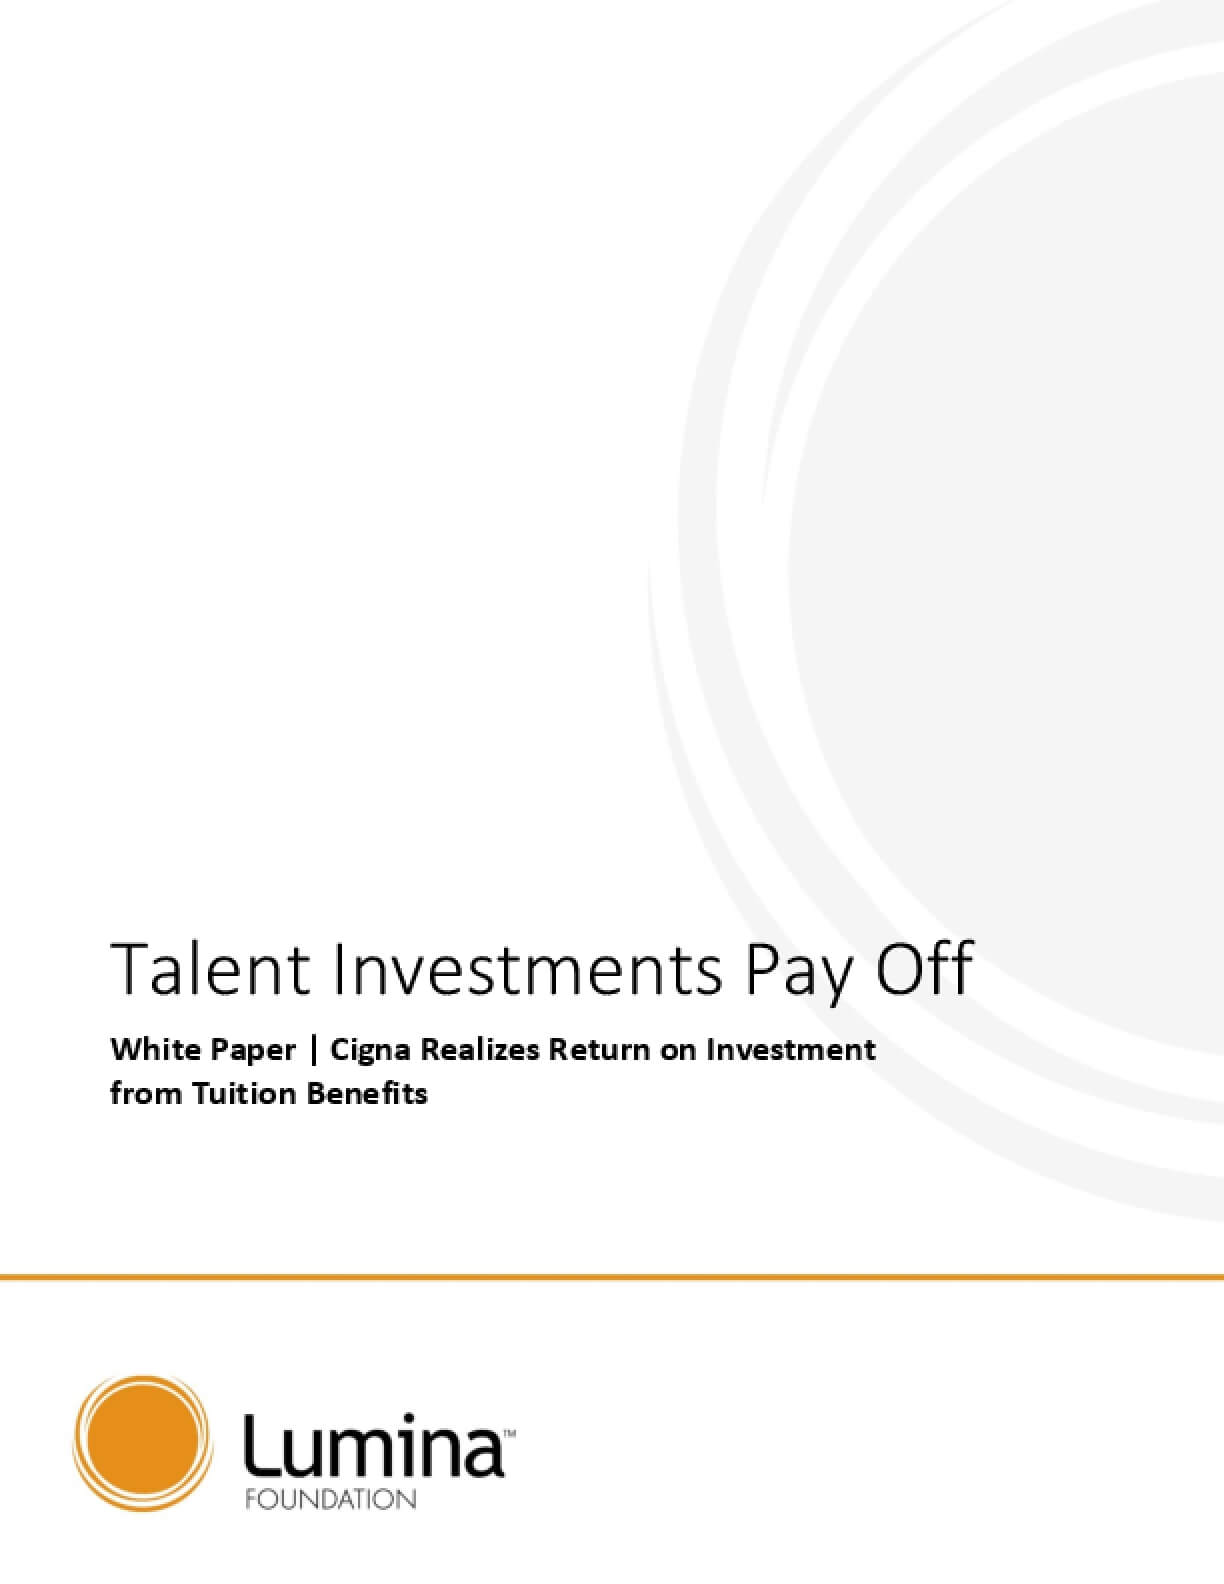 Talent Investments Pay Off: White Paper -  Cigna Realizes Return on Investment from Tuition Benefits